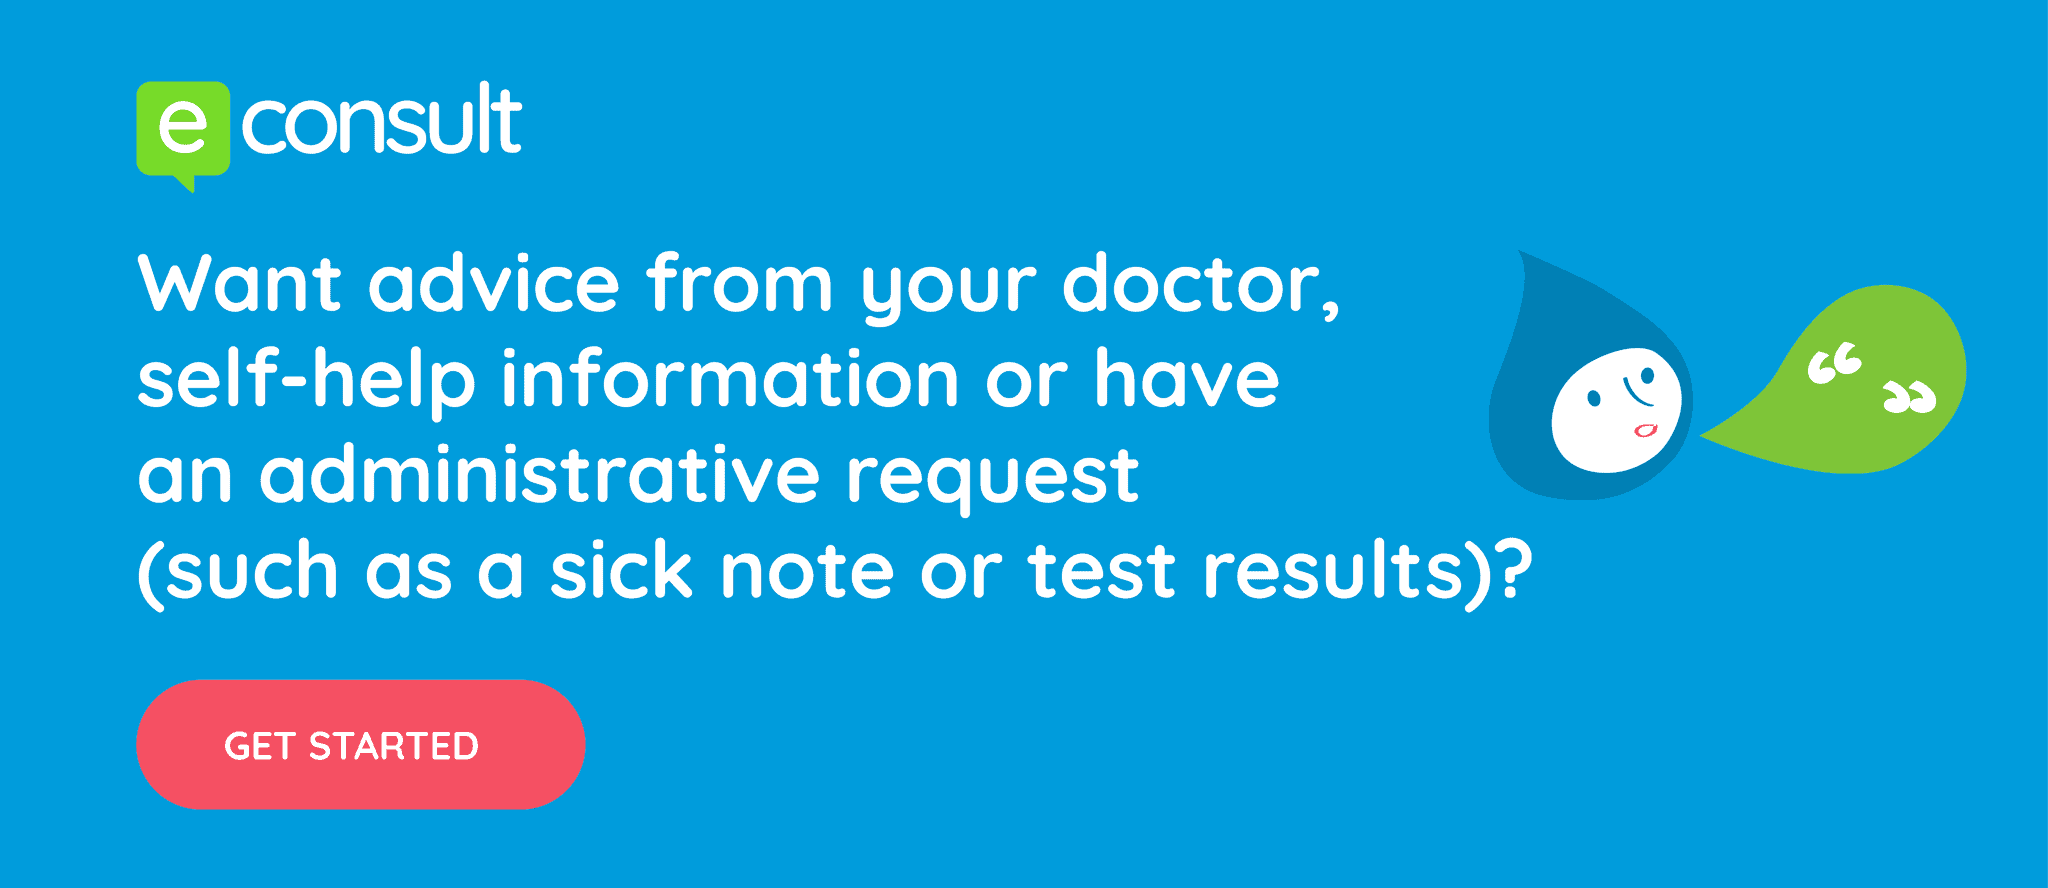 Want advice from your doctor? Do it online. Start Now.